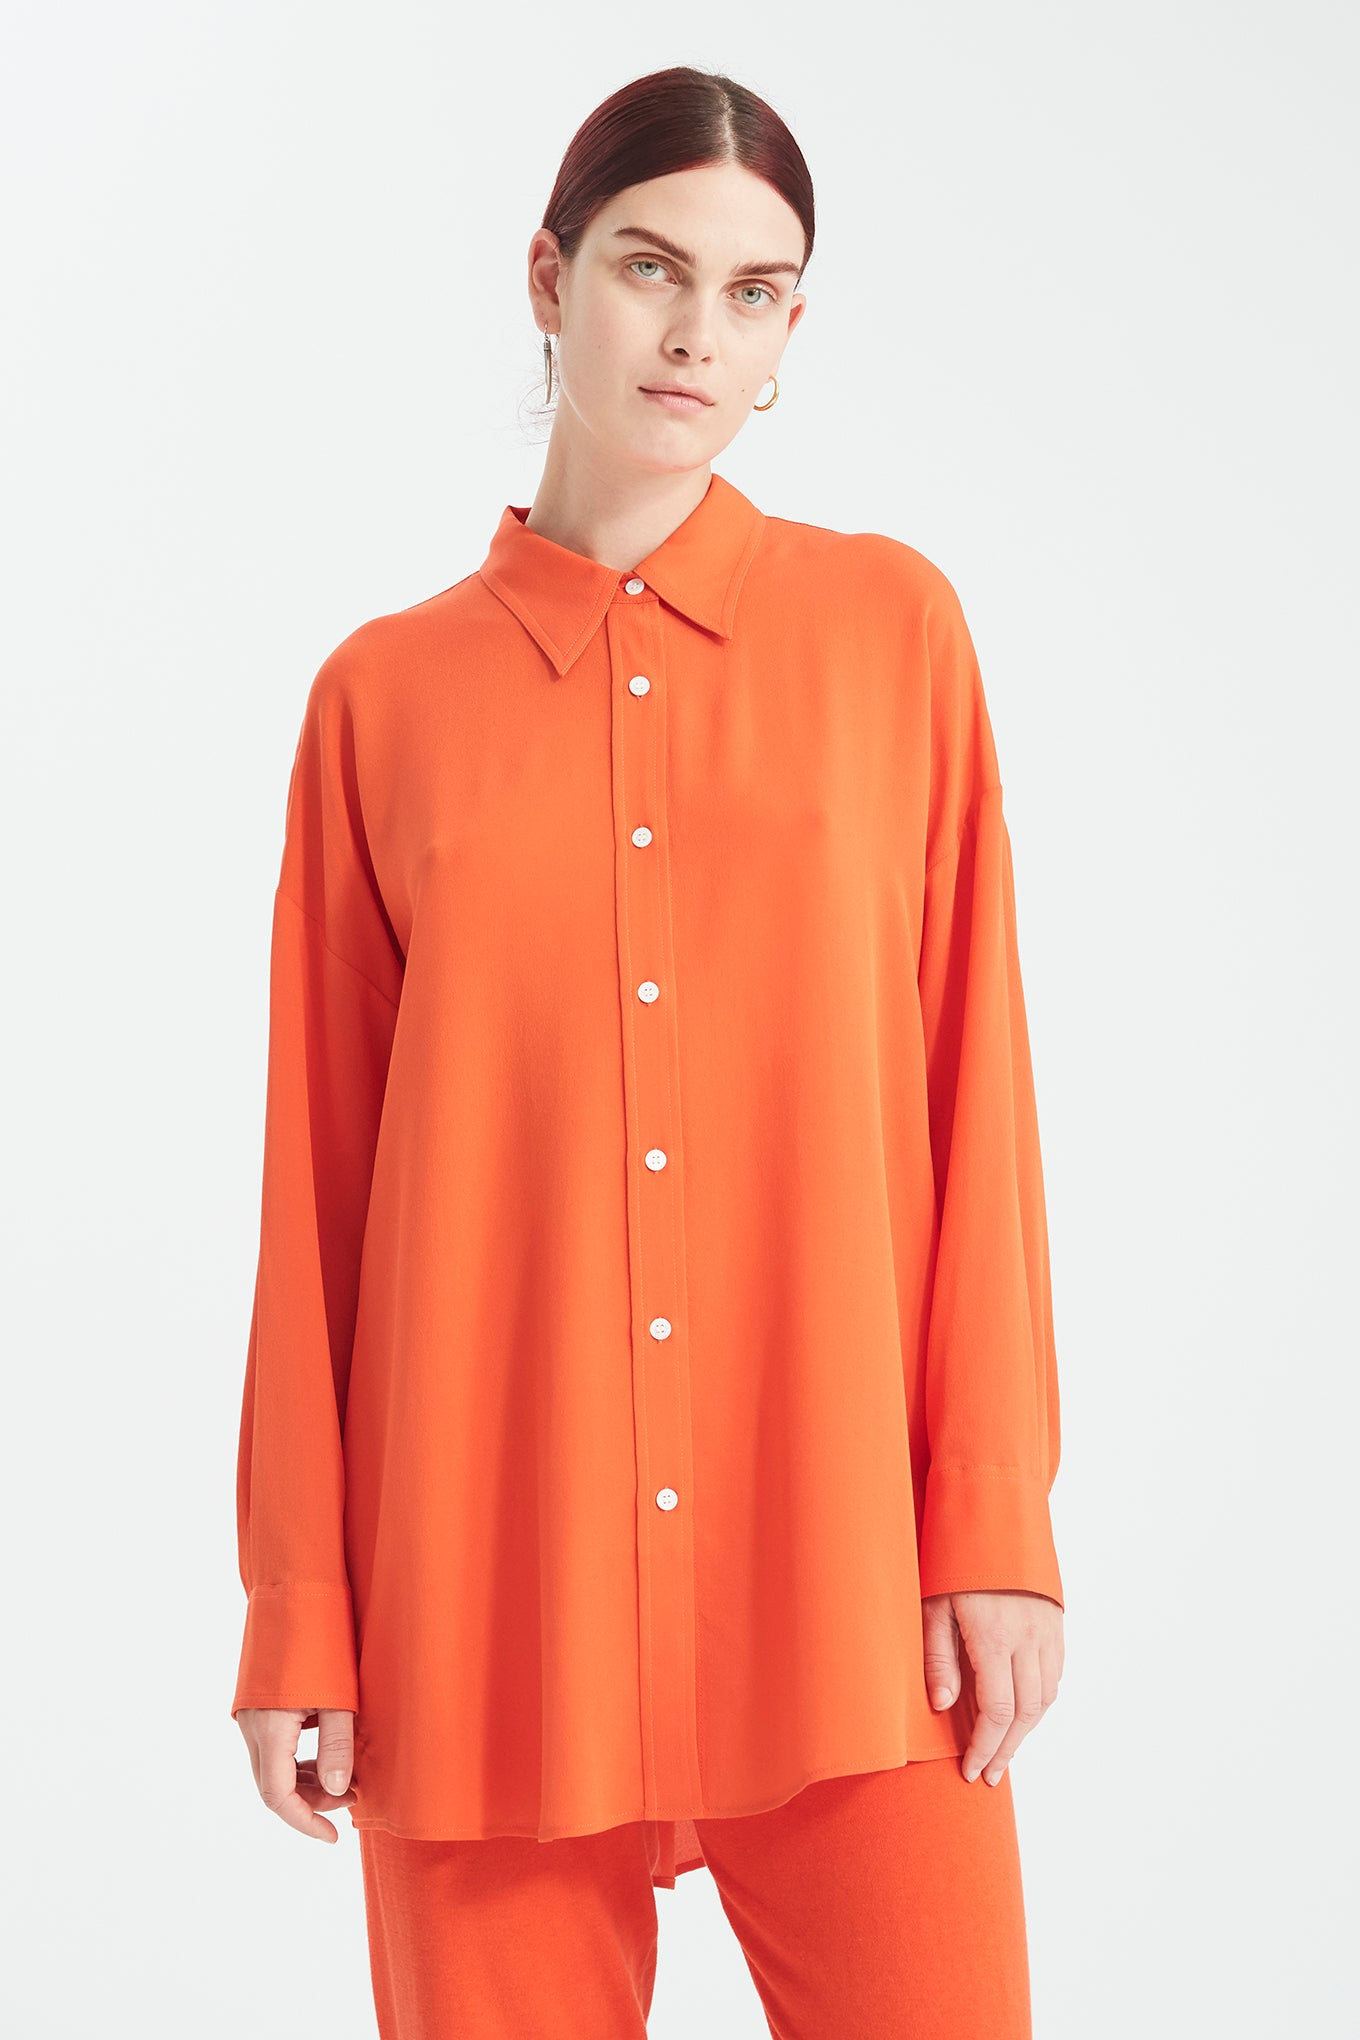 Bianca 70s Shirt - Bright Orange